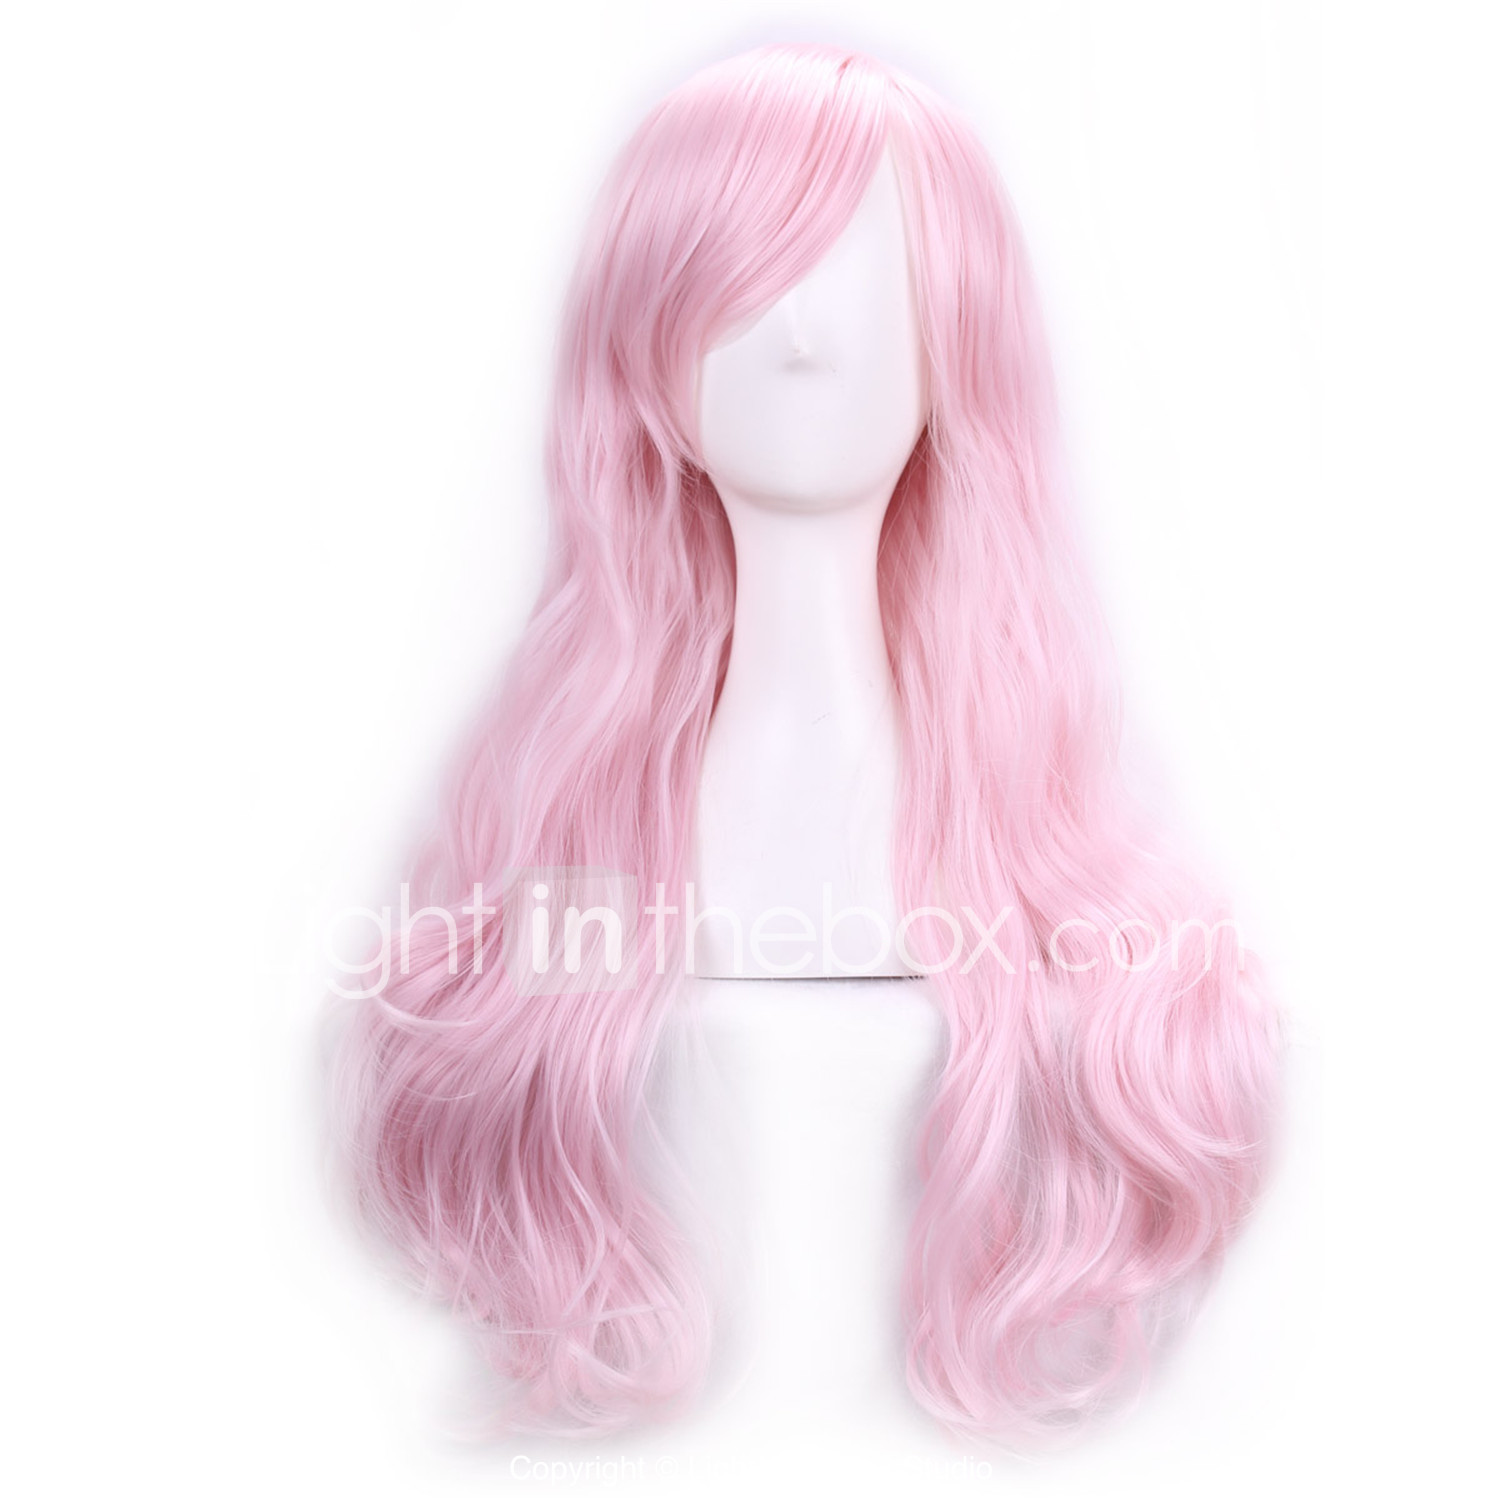 70 cm harajuku anime cosplay wigs for party costume women ladies long full  wavy curly synthetic hair pink wig Halloween  03877720 975b686471